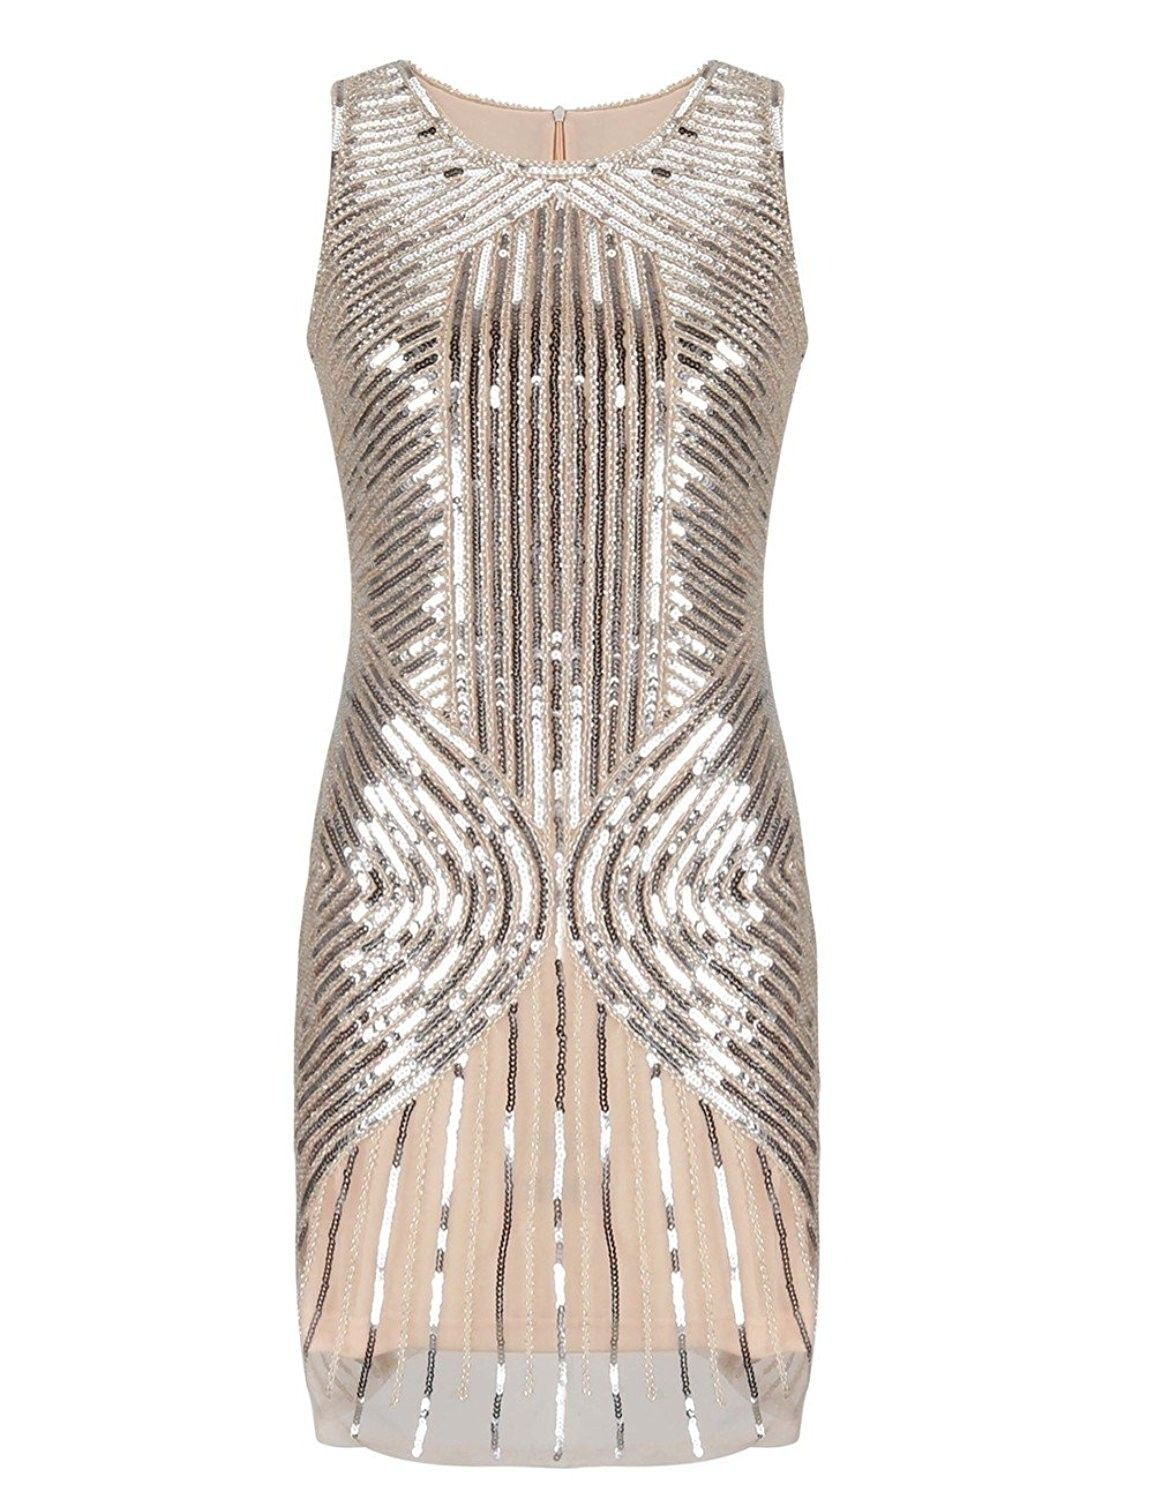 459935ac27b I want to marry this dress!!! Vintage Bergdorf Goodman Bugle Beaded  Cocktail Dress by Vigan